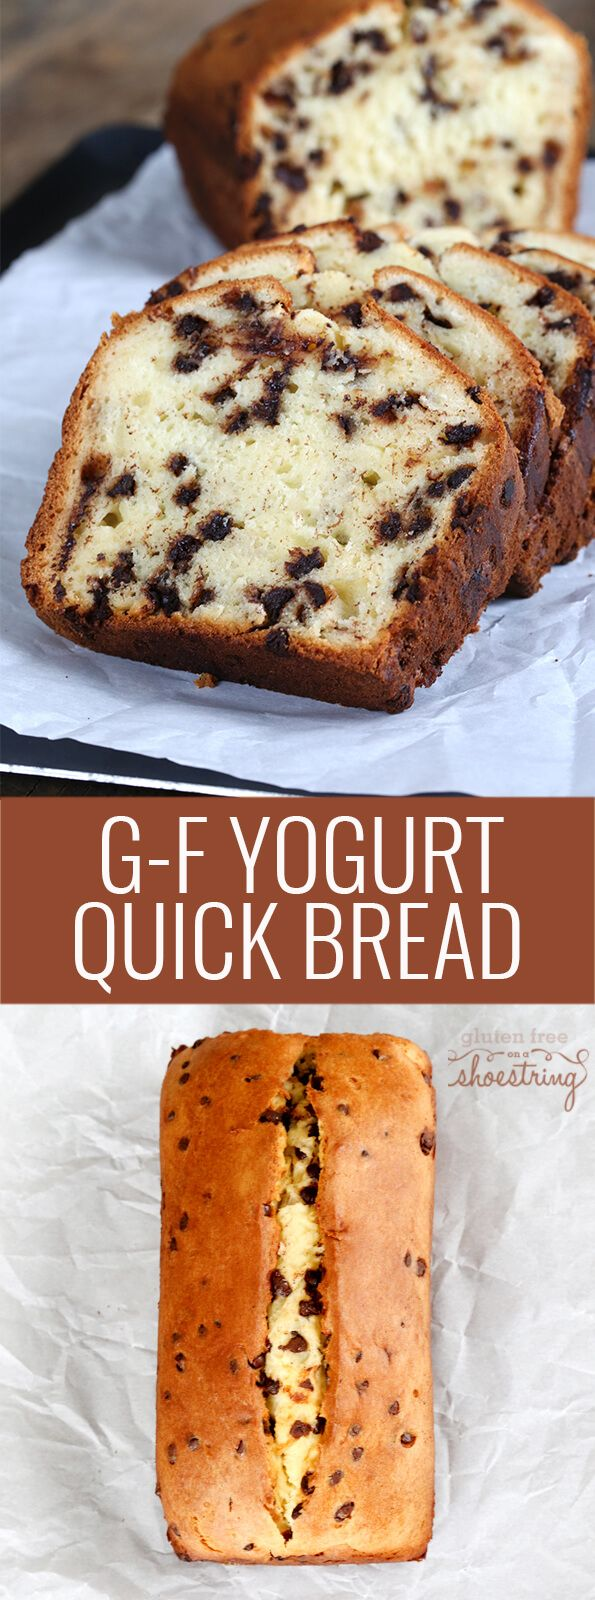 This tested recipe for gluten free quick bread is made with yogurt and chocolate chips. Super simple recip